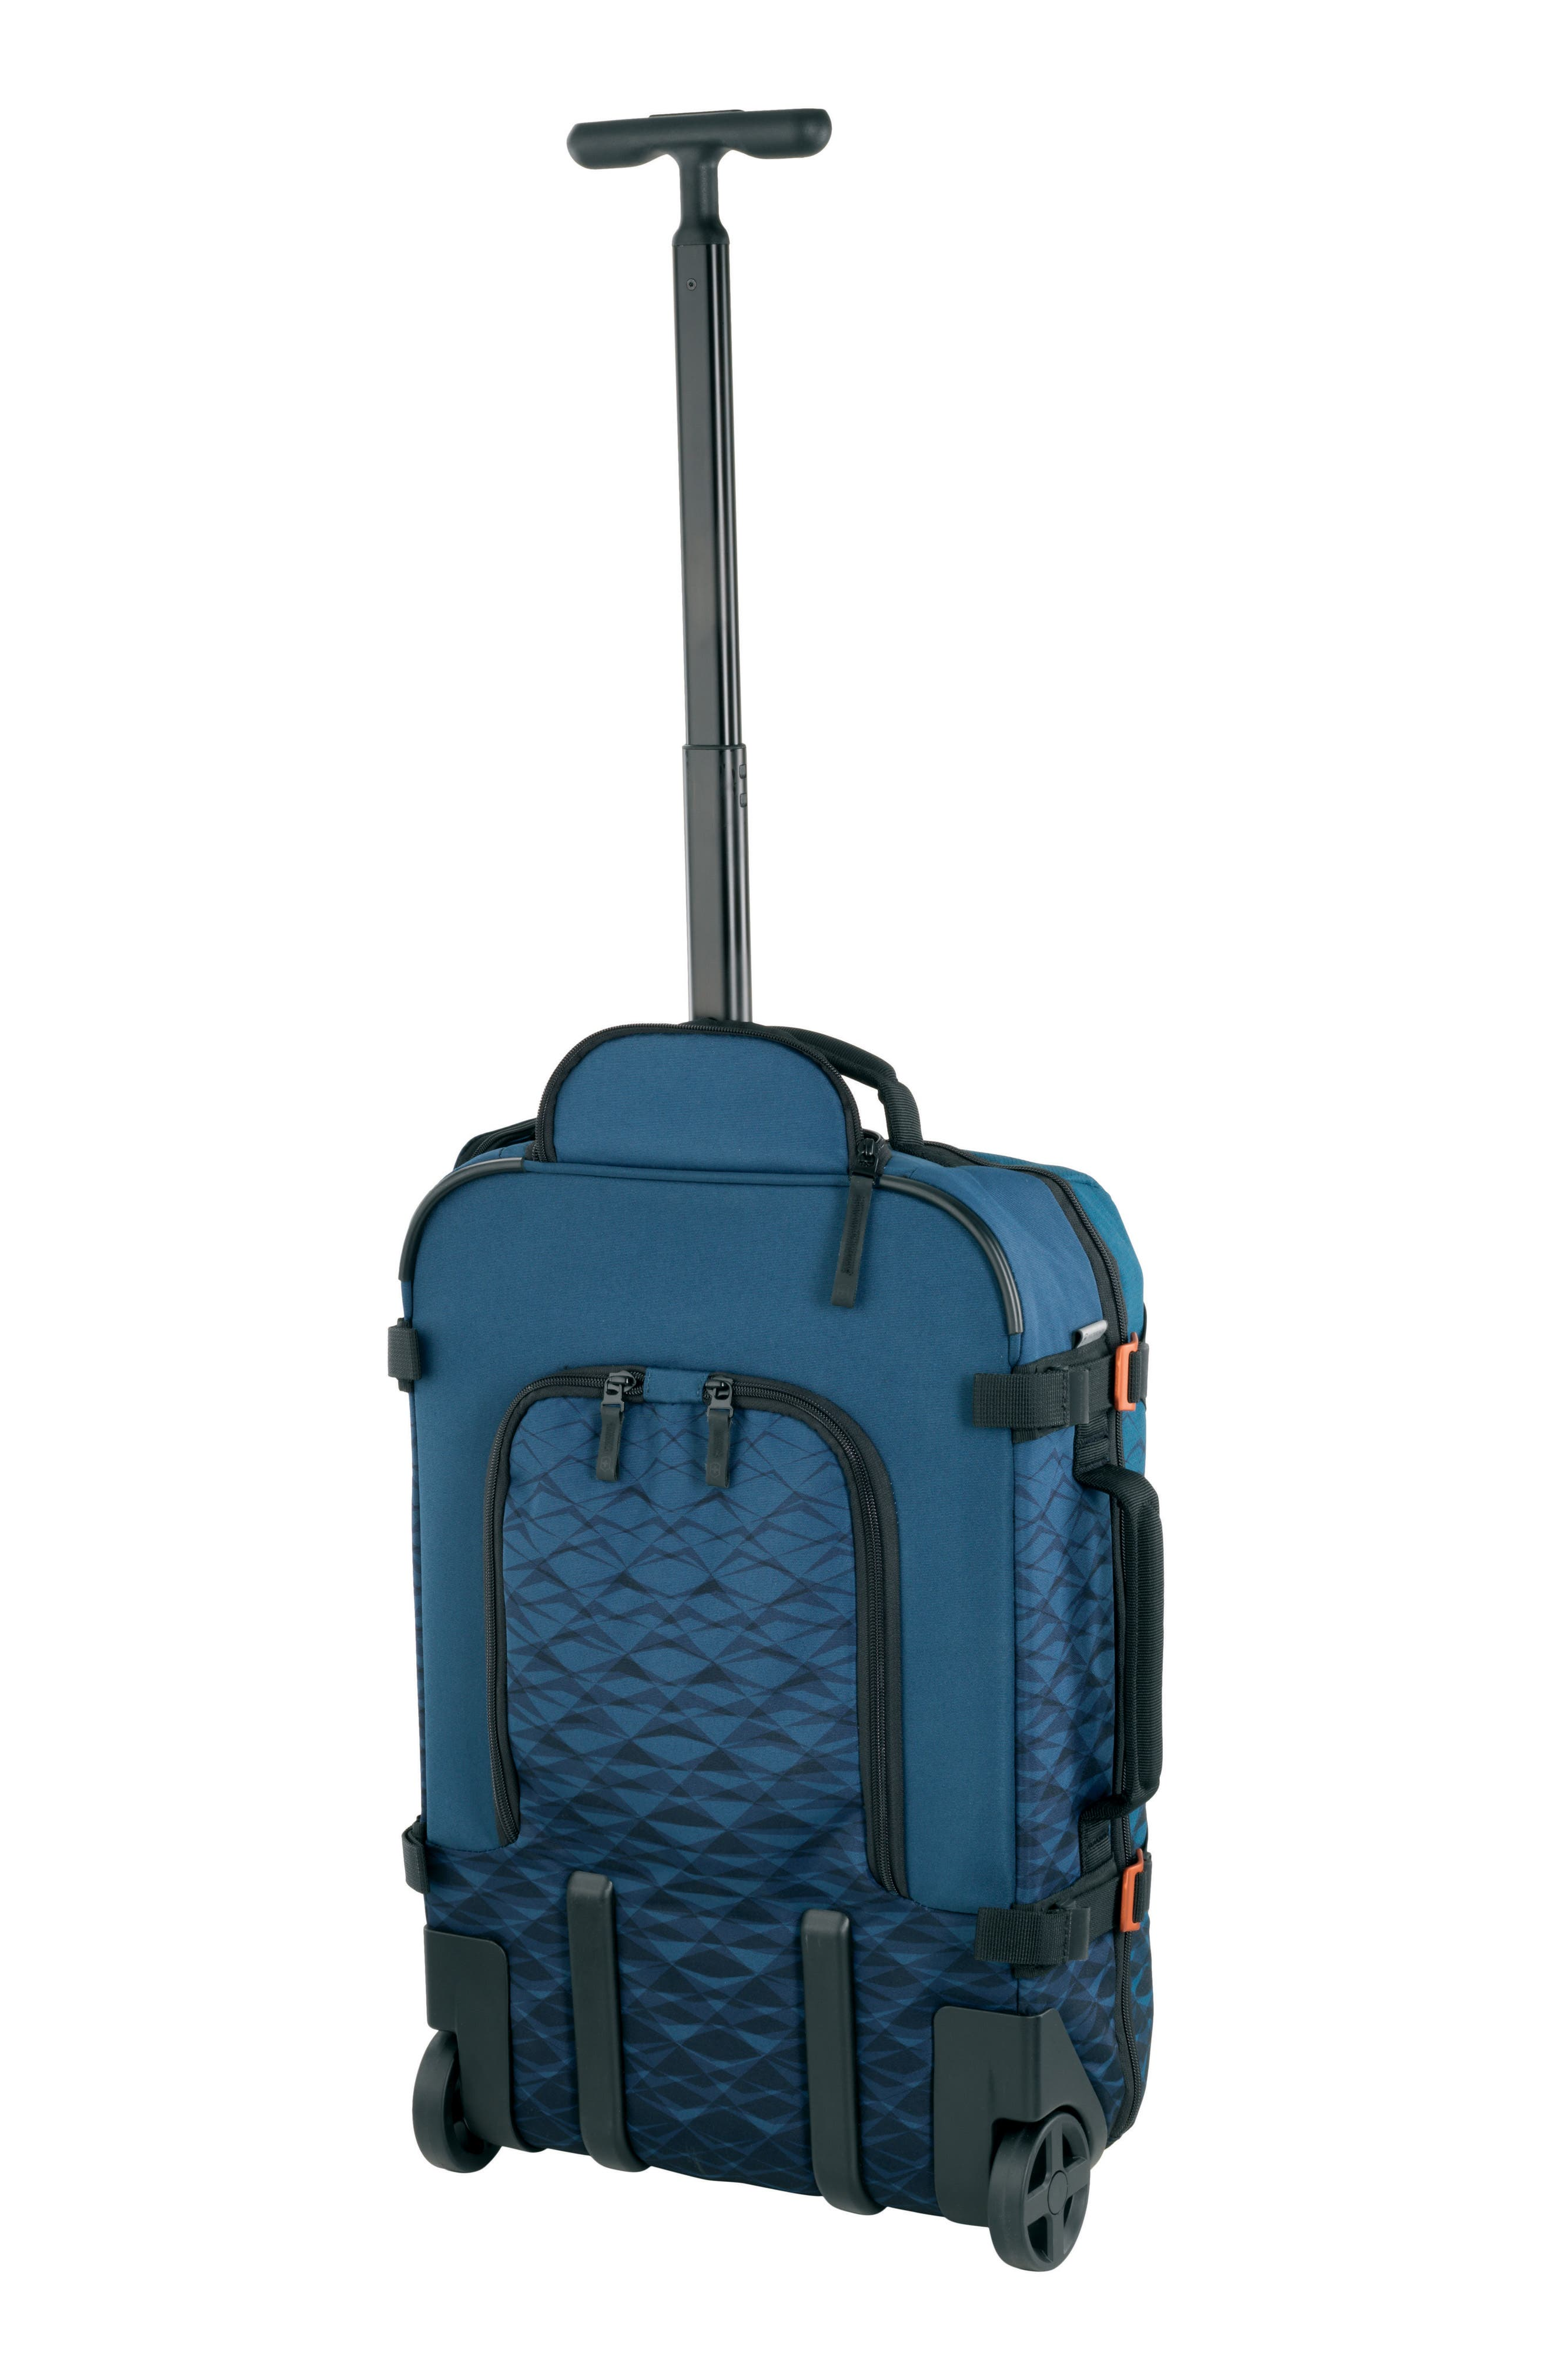 VX Touring 21-Inch Carry-On,                             Alternate thumbnail 5, color,                             Dark Teal